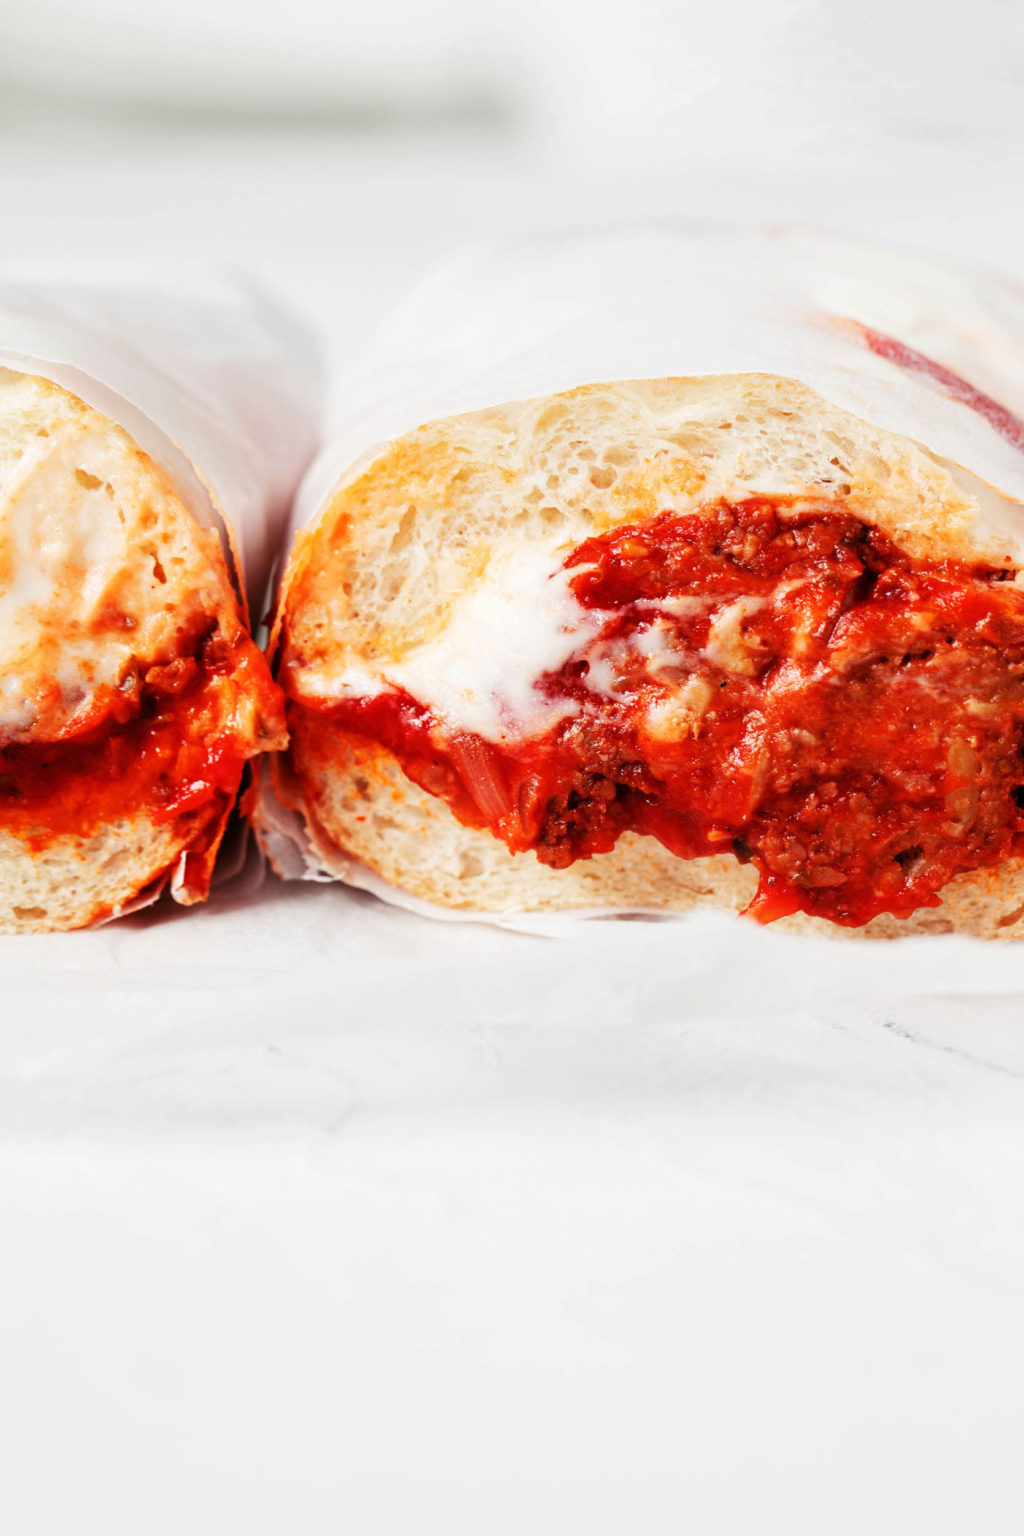 A vegan Italian meatball sub, made with tempeh, has been sliced in half crosswise. A cross section of the sandwich is shown against a white background.